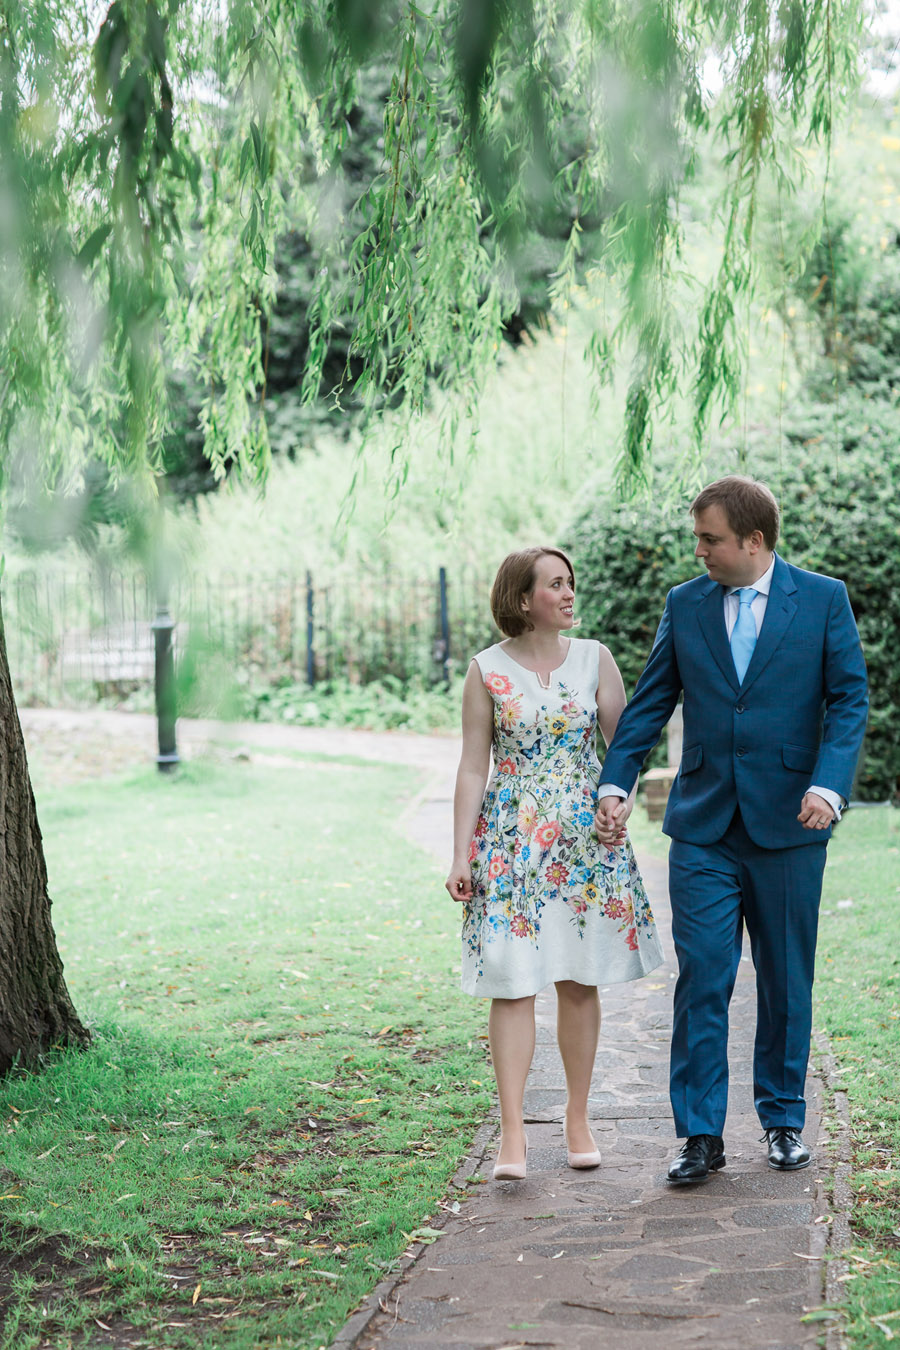 Hertford Castle intimate and alternative English wedding, photo credit Siobhan H Photography (24)